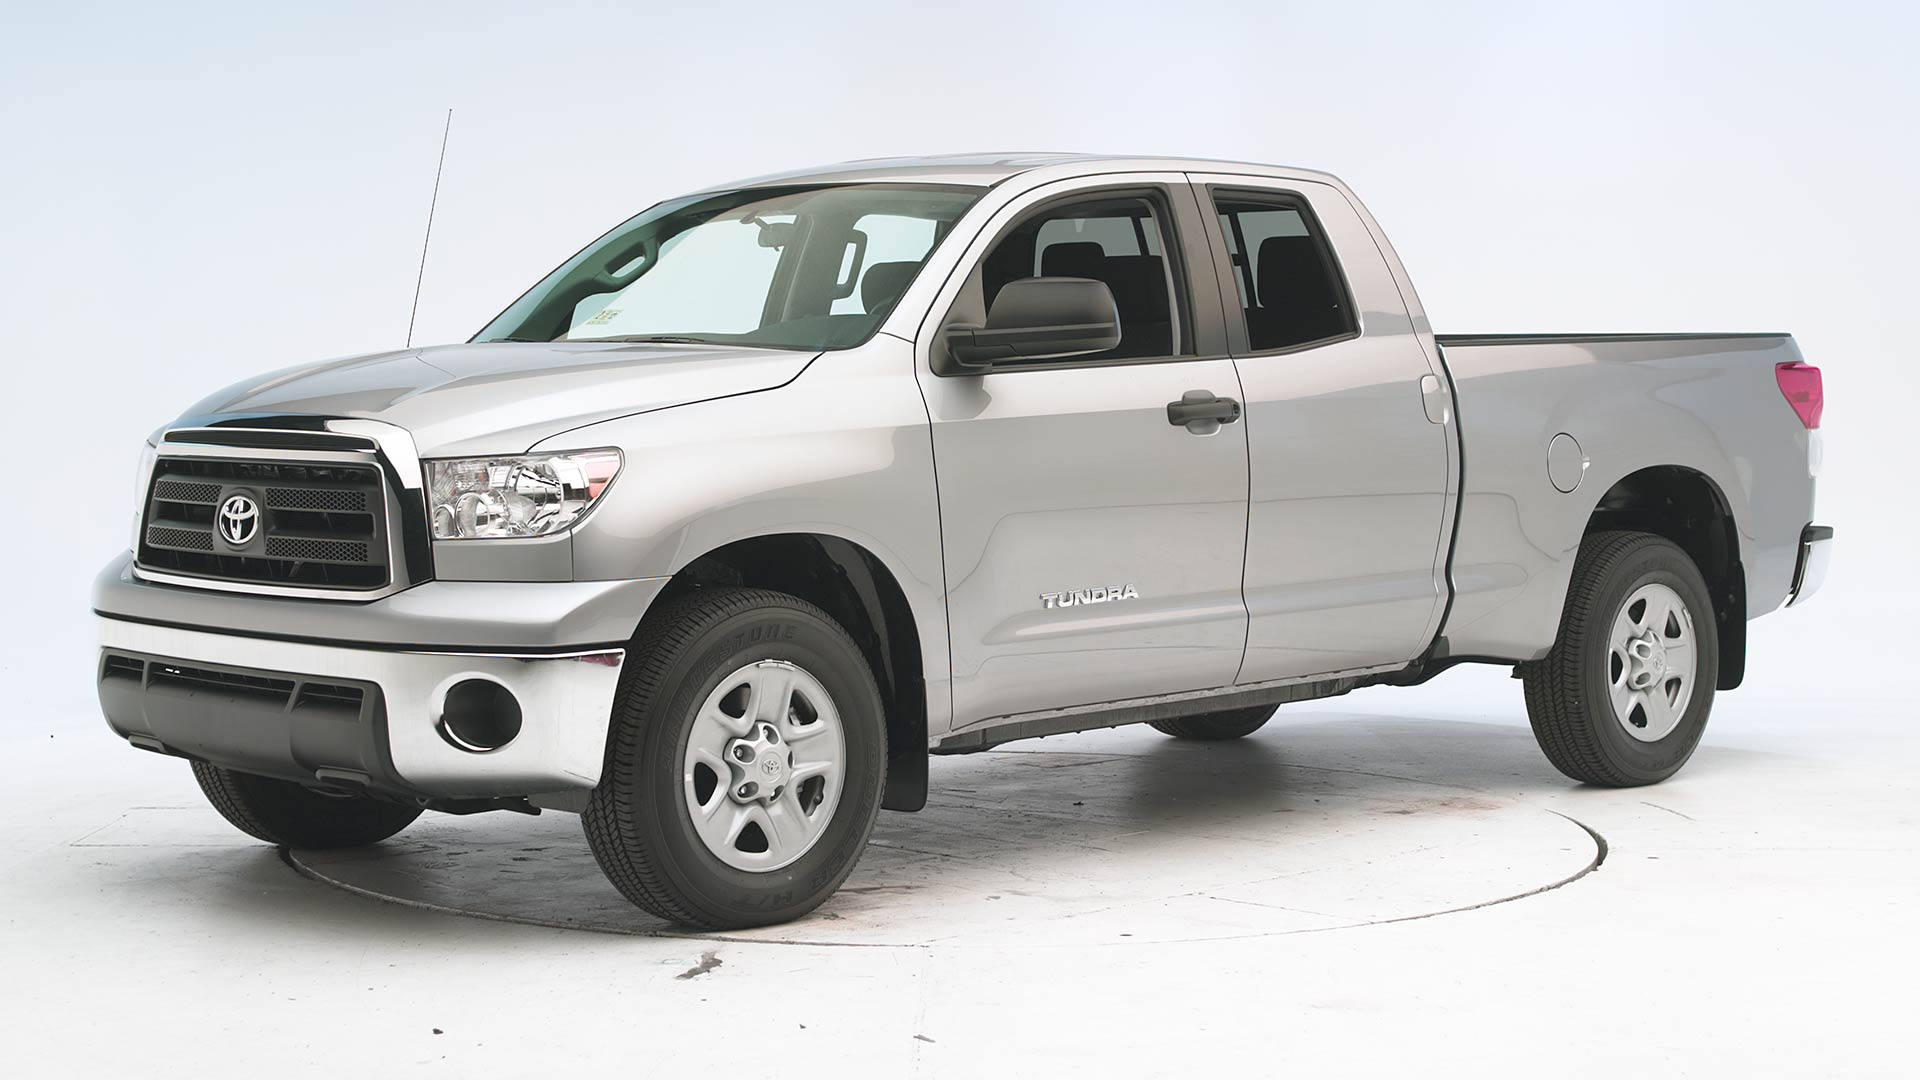 2014 Toyota Tundra Extended cab pickup